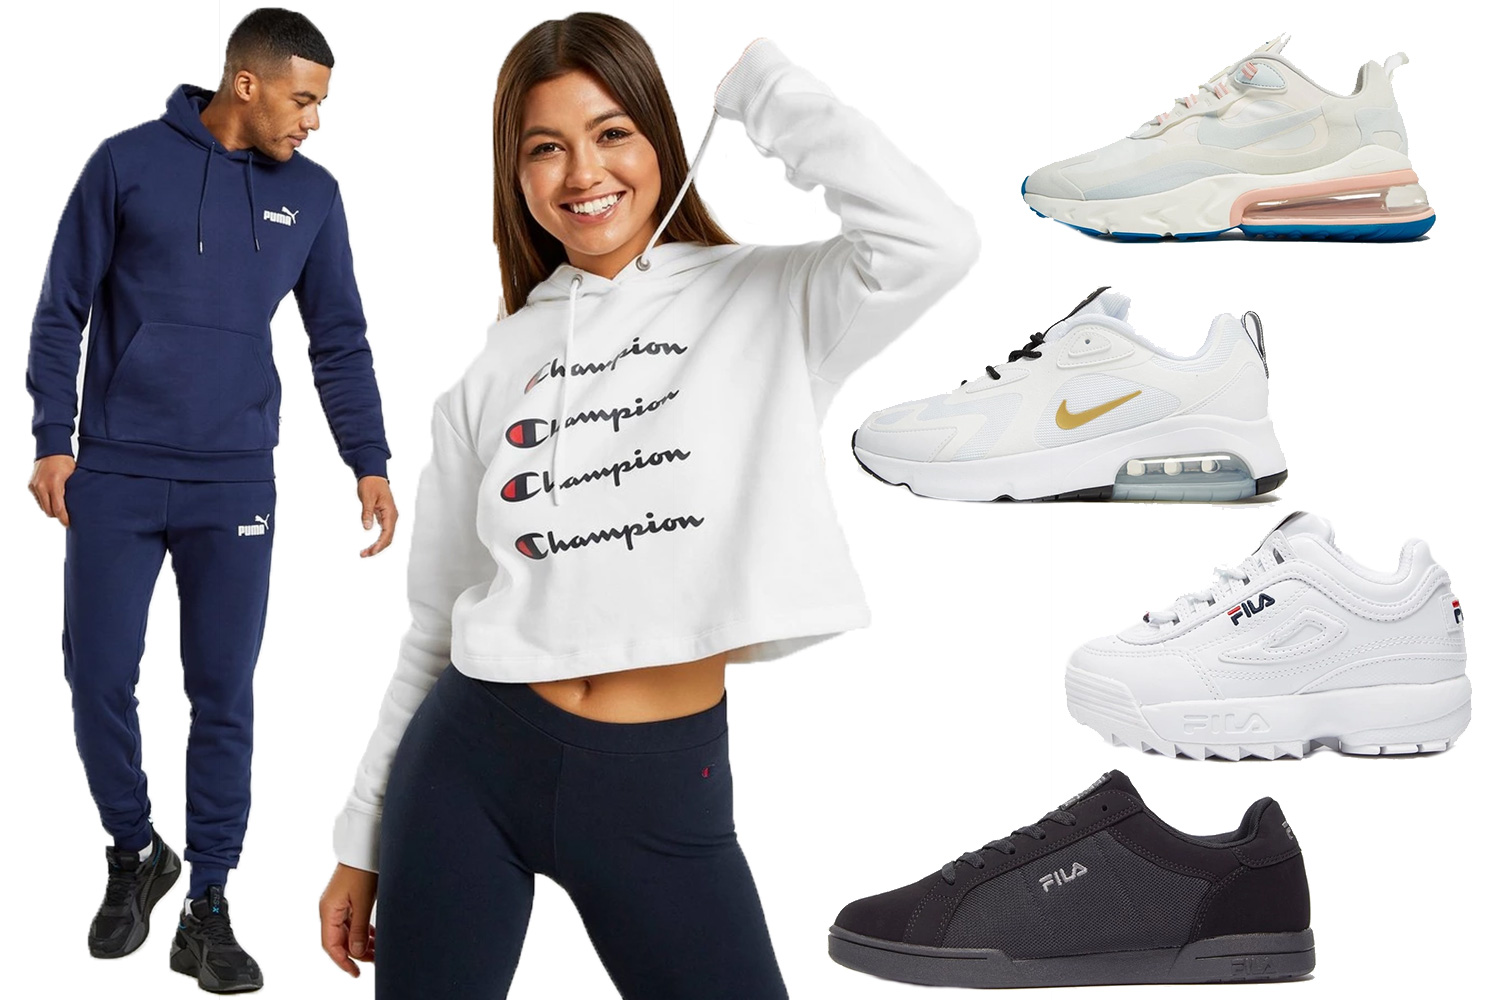 There was up to 50 per cent off sportswear brands like Nike and Adidas in JD Sports' 2019 Black Friday sale